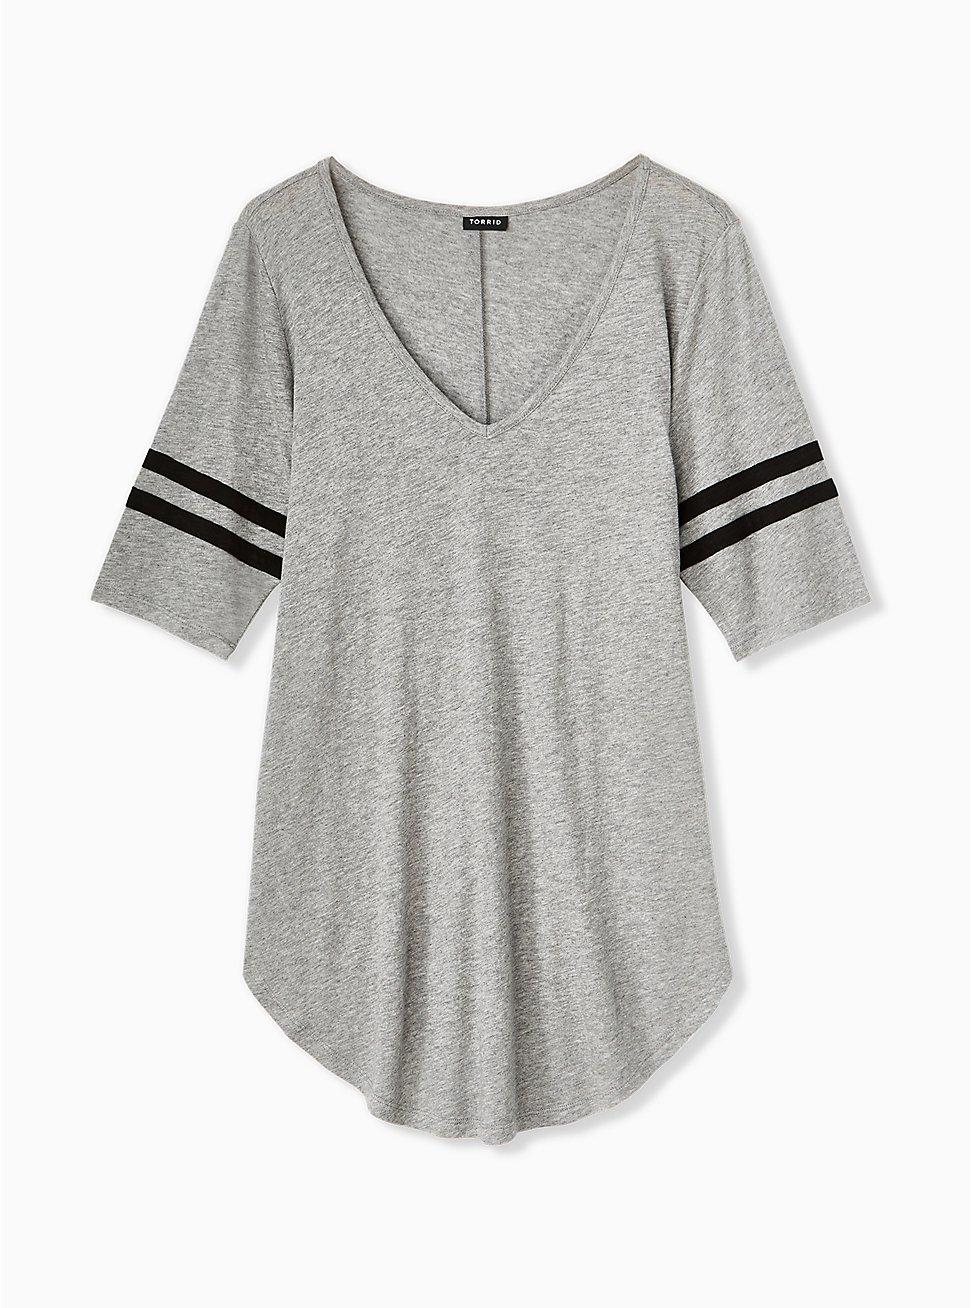 Football Favorite Tunic Tee - Heritage Slub Heather Grey , , hi-res